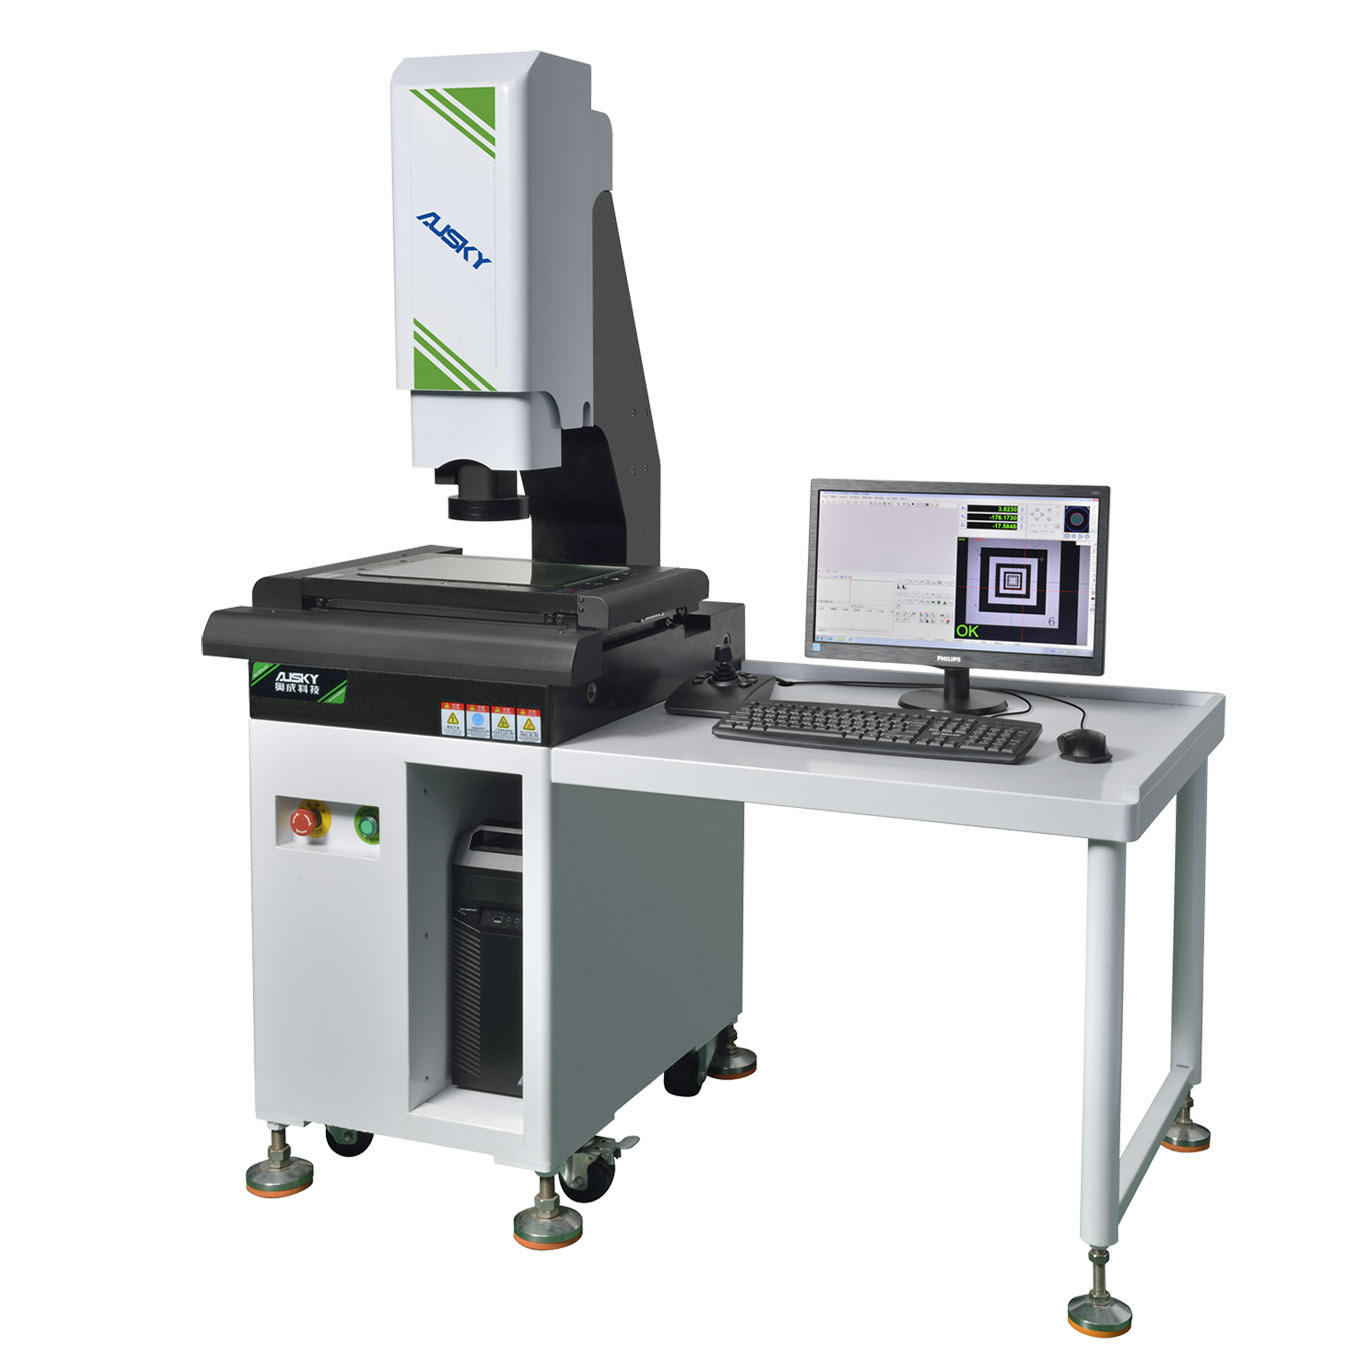 One-Stop Service [ Cmm Machine ] Measuring Machine Most Advanced CNC Type CMM Machine Coordinate Measuring For Precision Measurement